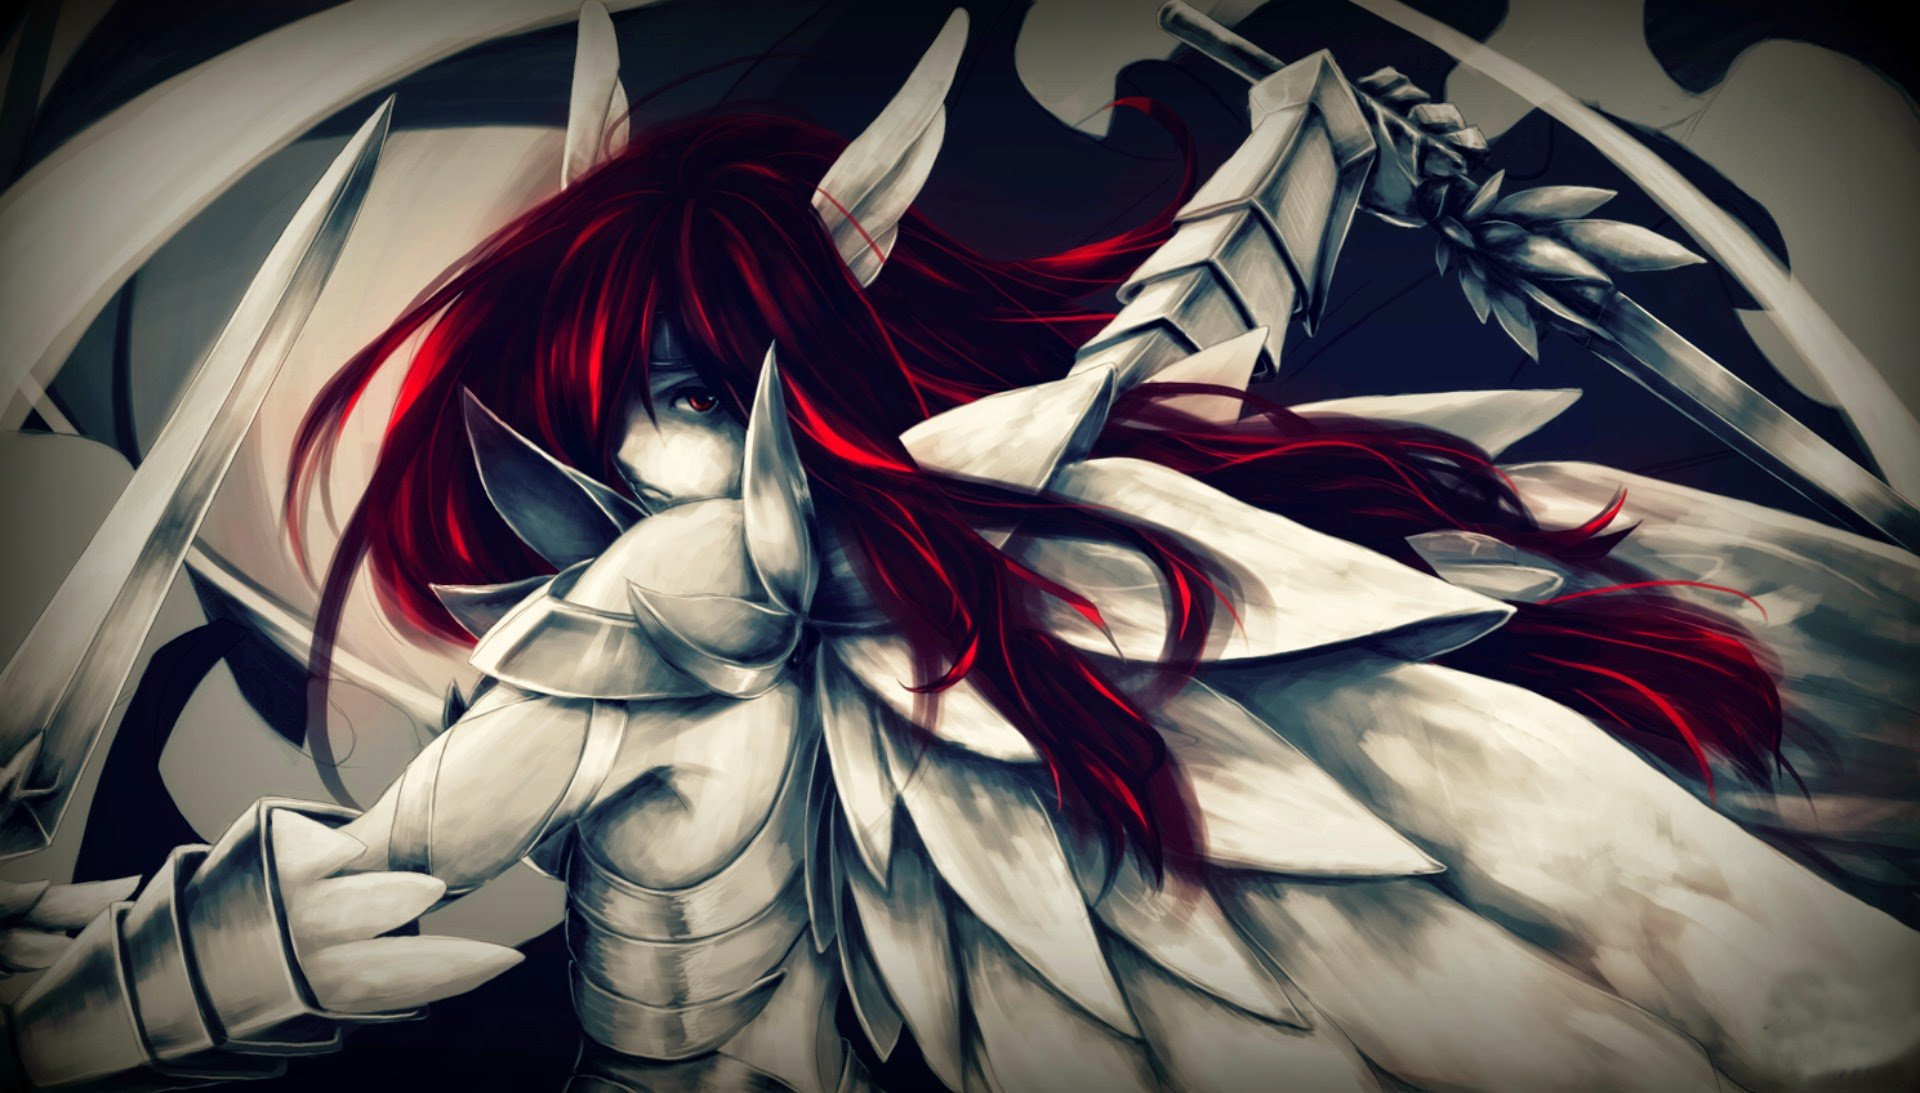 Fairy Tail Erza Wallpaper Hd Erza scarlet is an s class 1920x1093